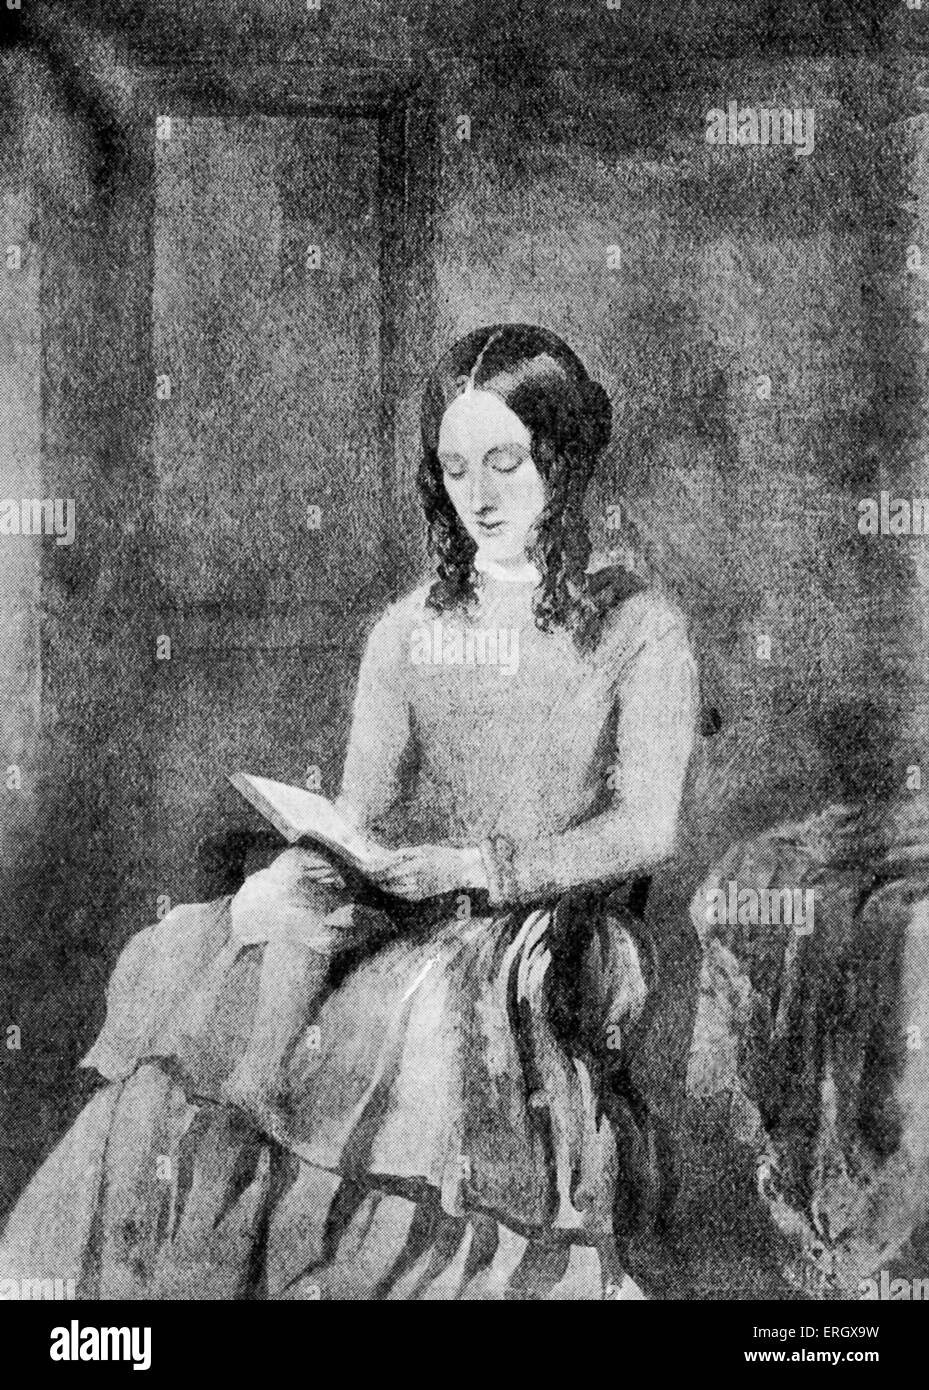 Charlotte Bronte: British novelist, 1816-1855. From a water colour by Paul Heger, 1850. Stock Photo